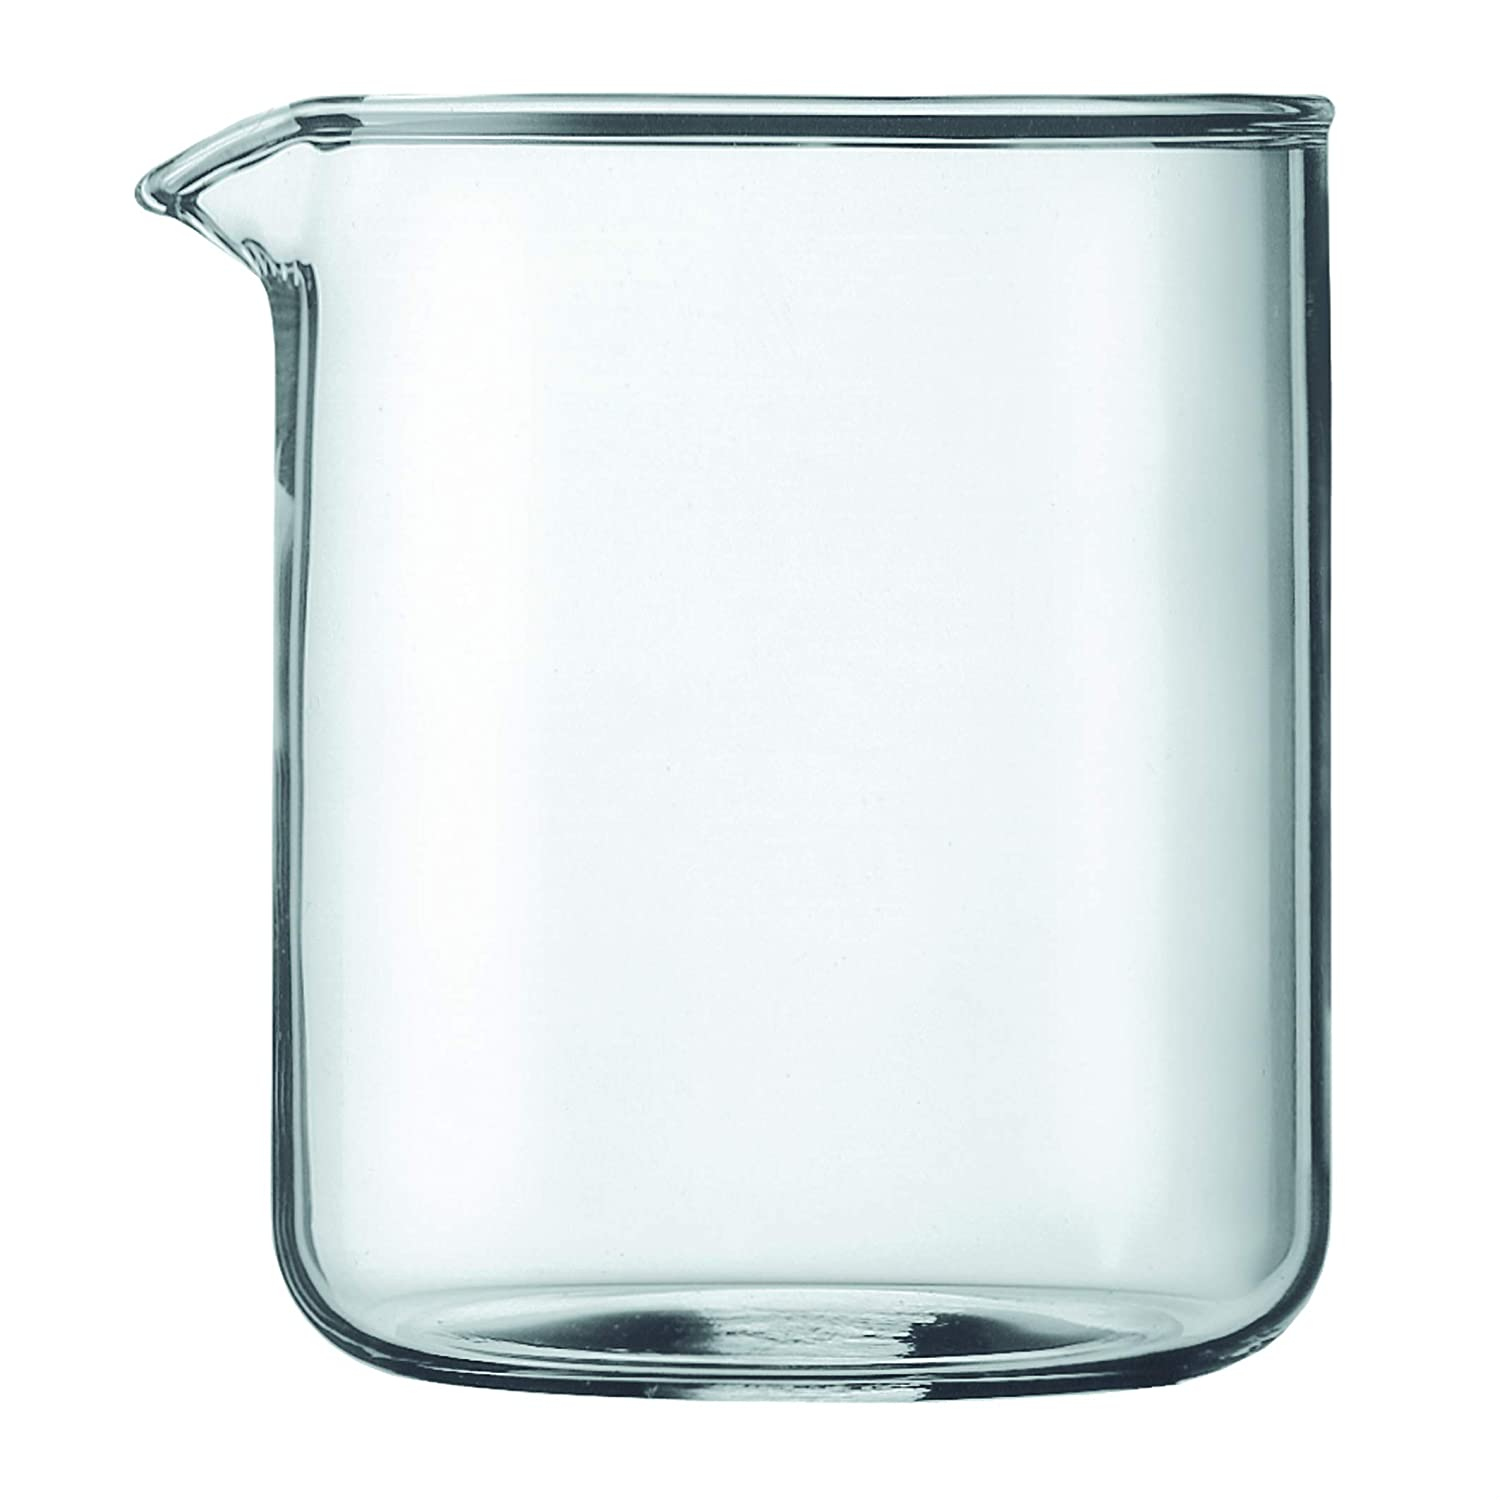 Bodum Spare Beaker For French Press Coffee Maker, 0.5 Liter, 17 Ounce, 4 Cup